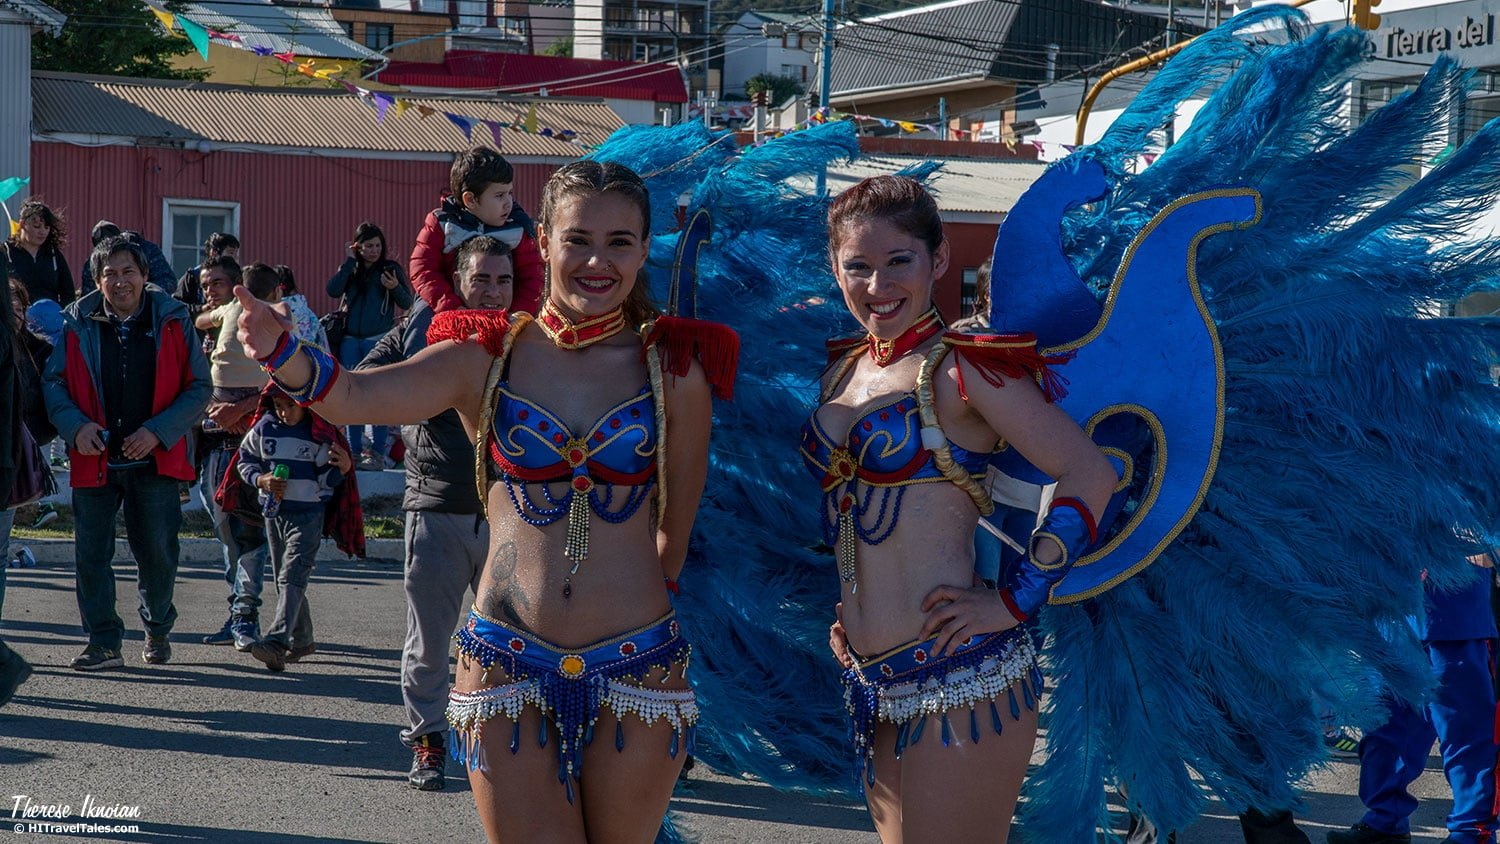 Ushuaia's winged princesses were happy to pose for photos after the parade.